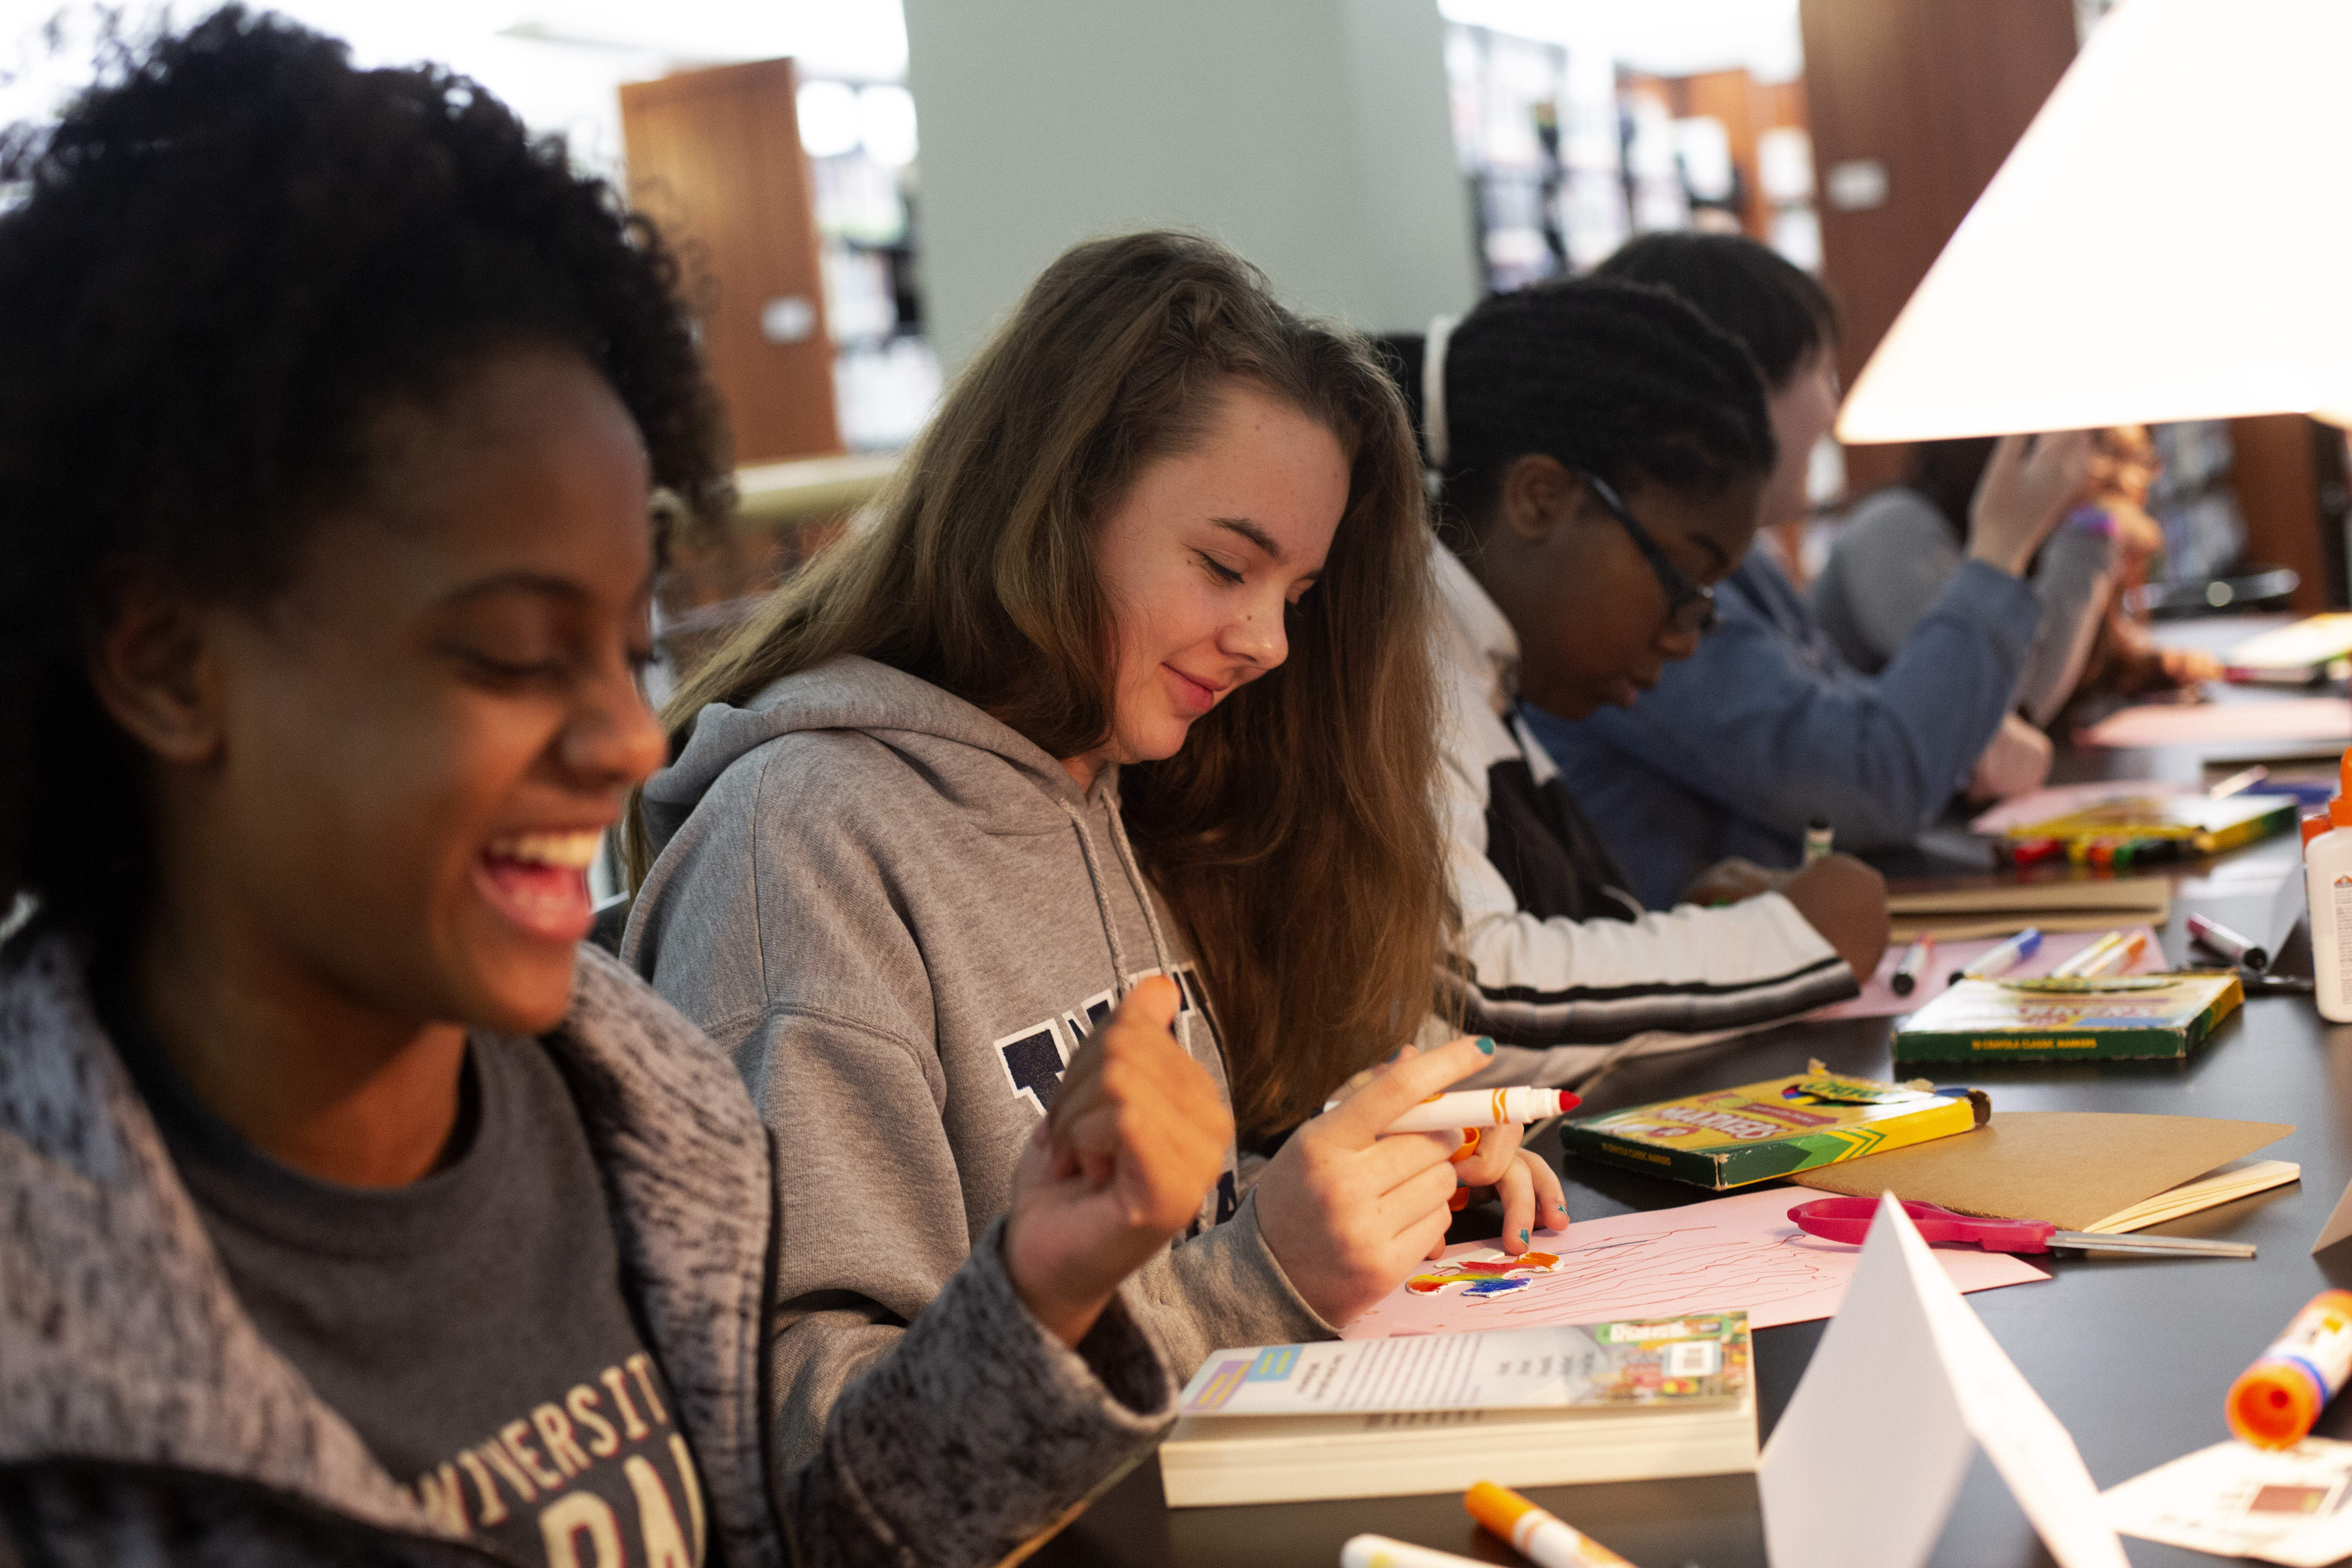 Teens laugh and color at a craft event.